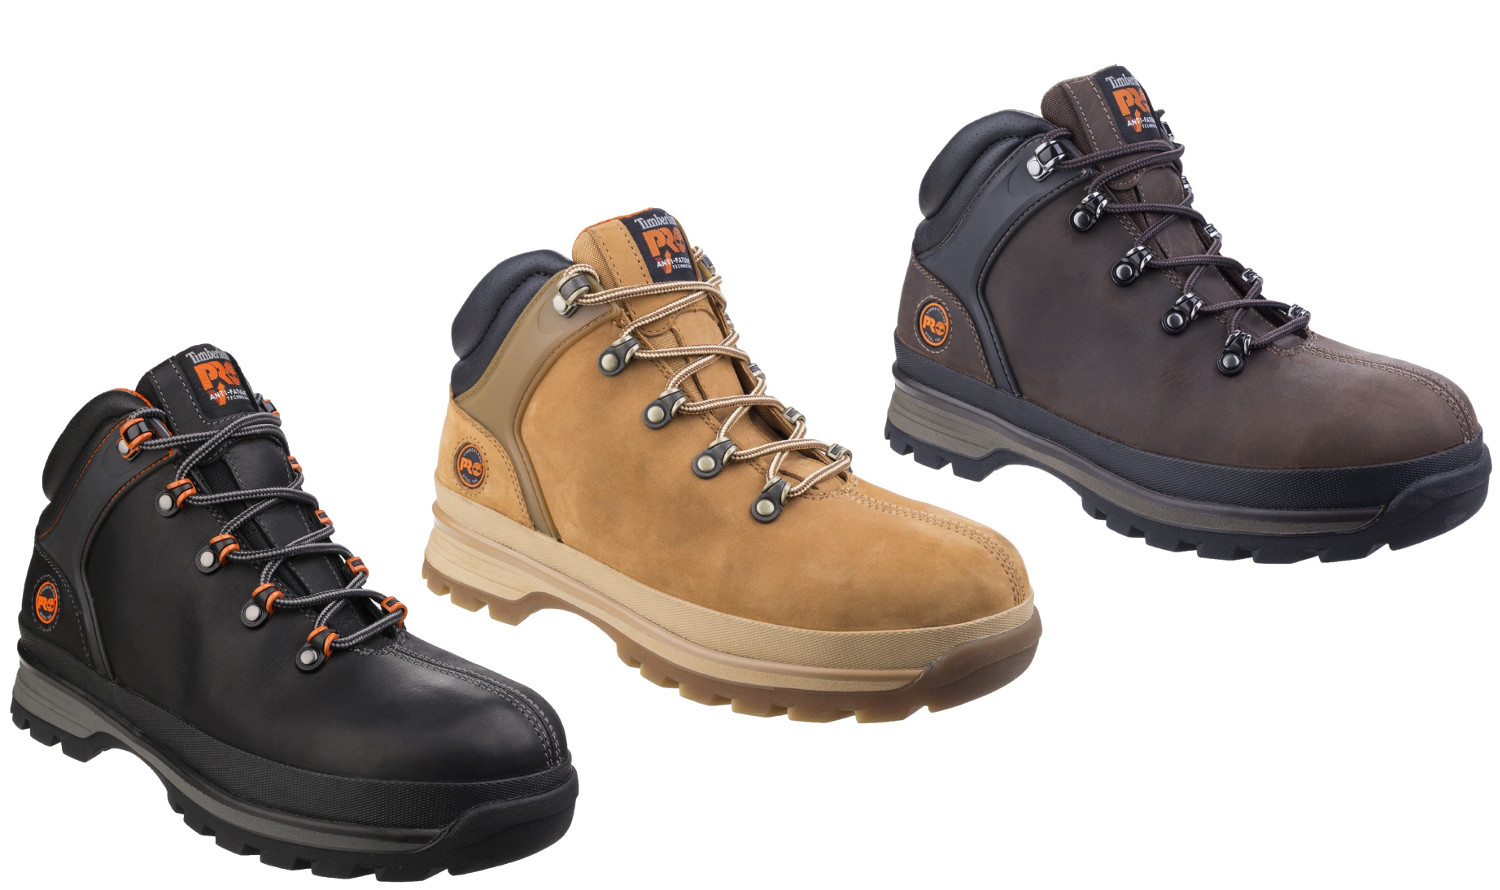 1e721a827ec Timberland Pro Splitrock XT Steel Toe Cap Work Safety Hiker Boots